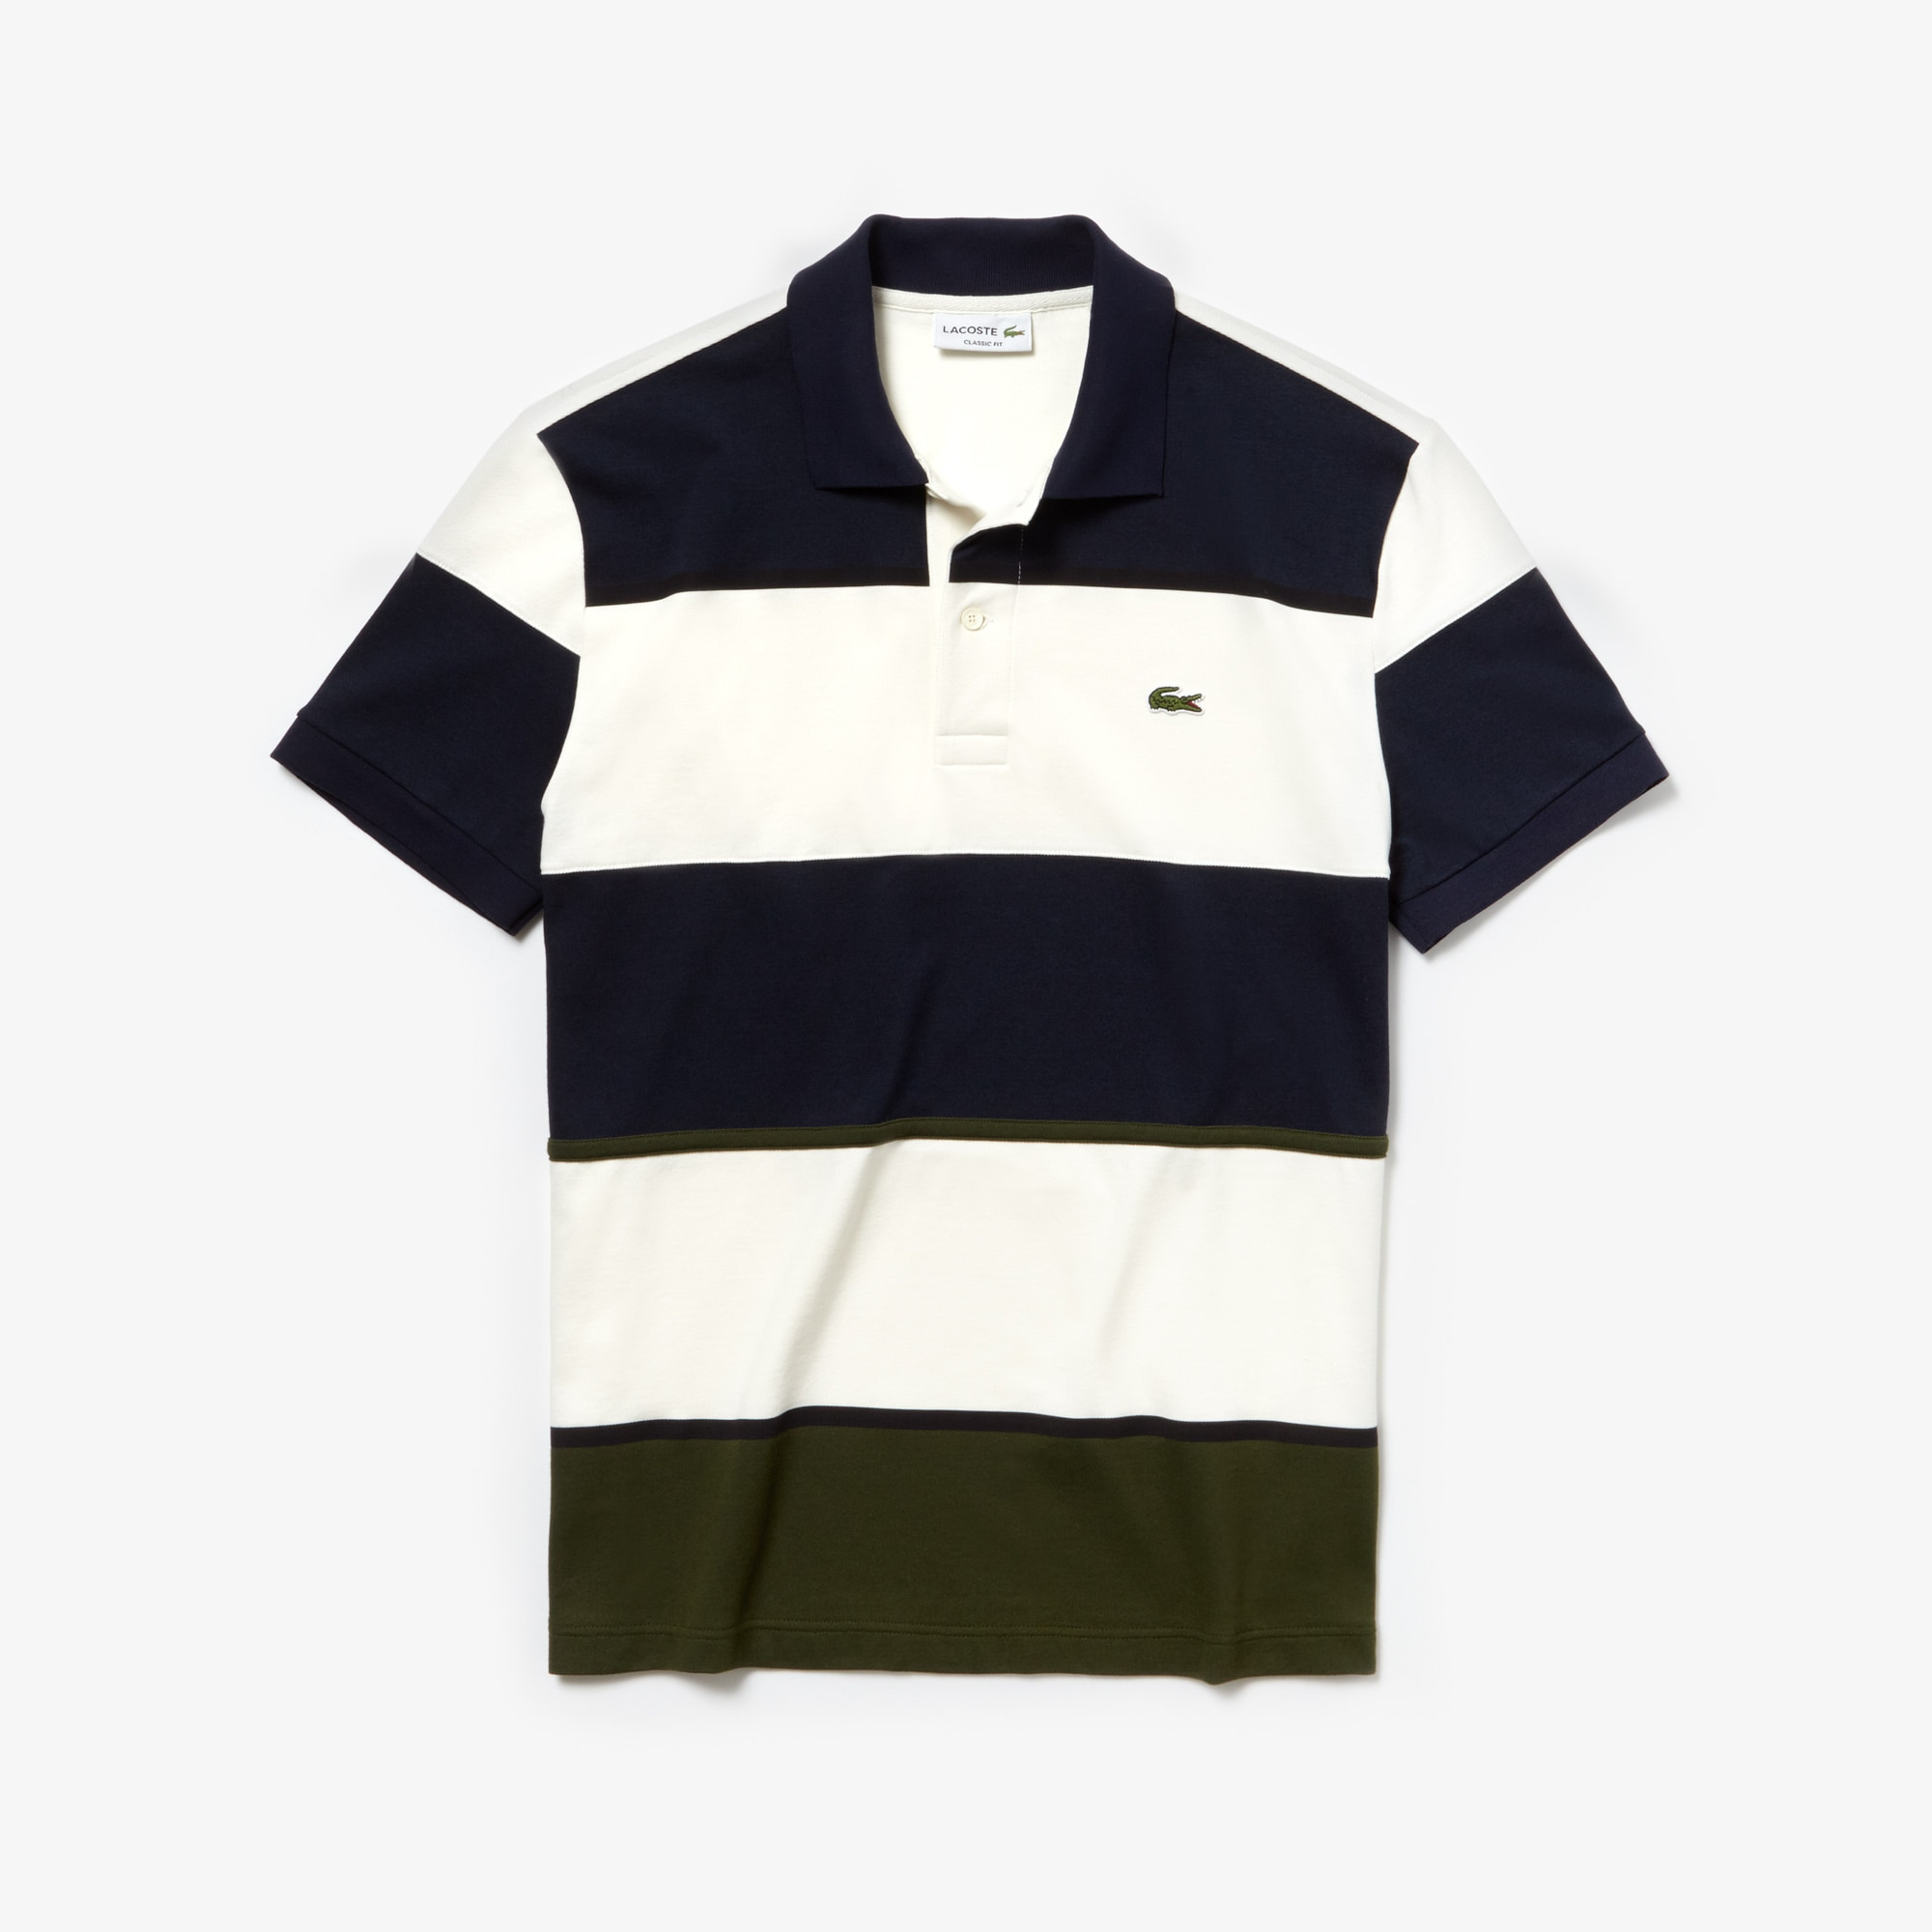 1d4351d660 Men's Lacoste L.12.12 Colourblock Striped Technical Piqué Polo Shirt ...